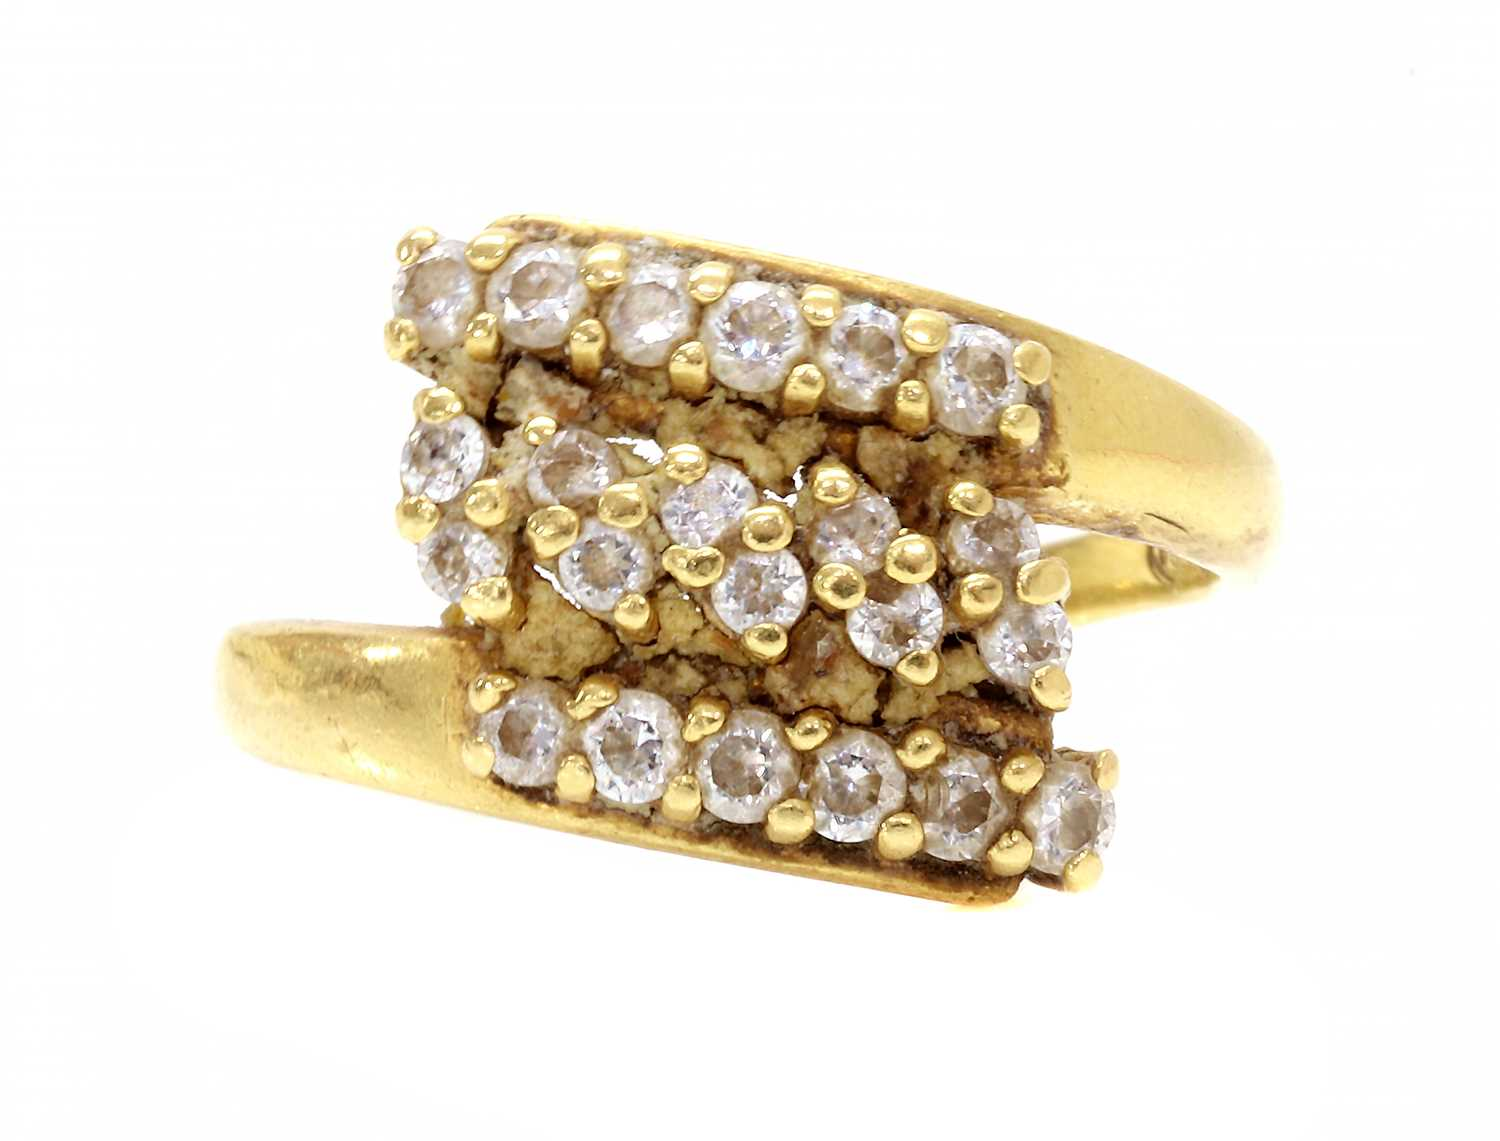 An Indian high carat gold cubic zirconia crossover ring,